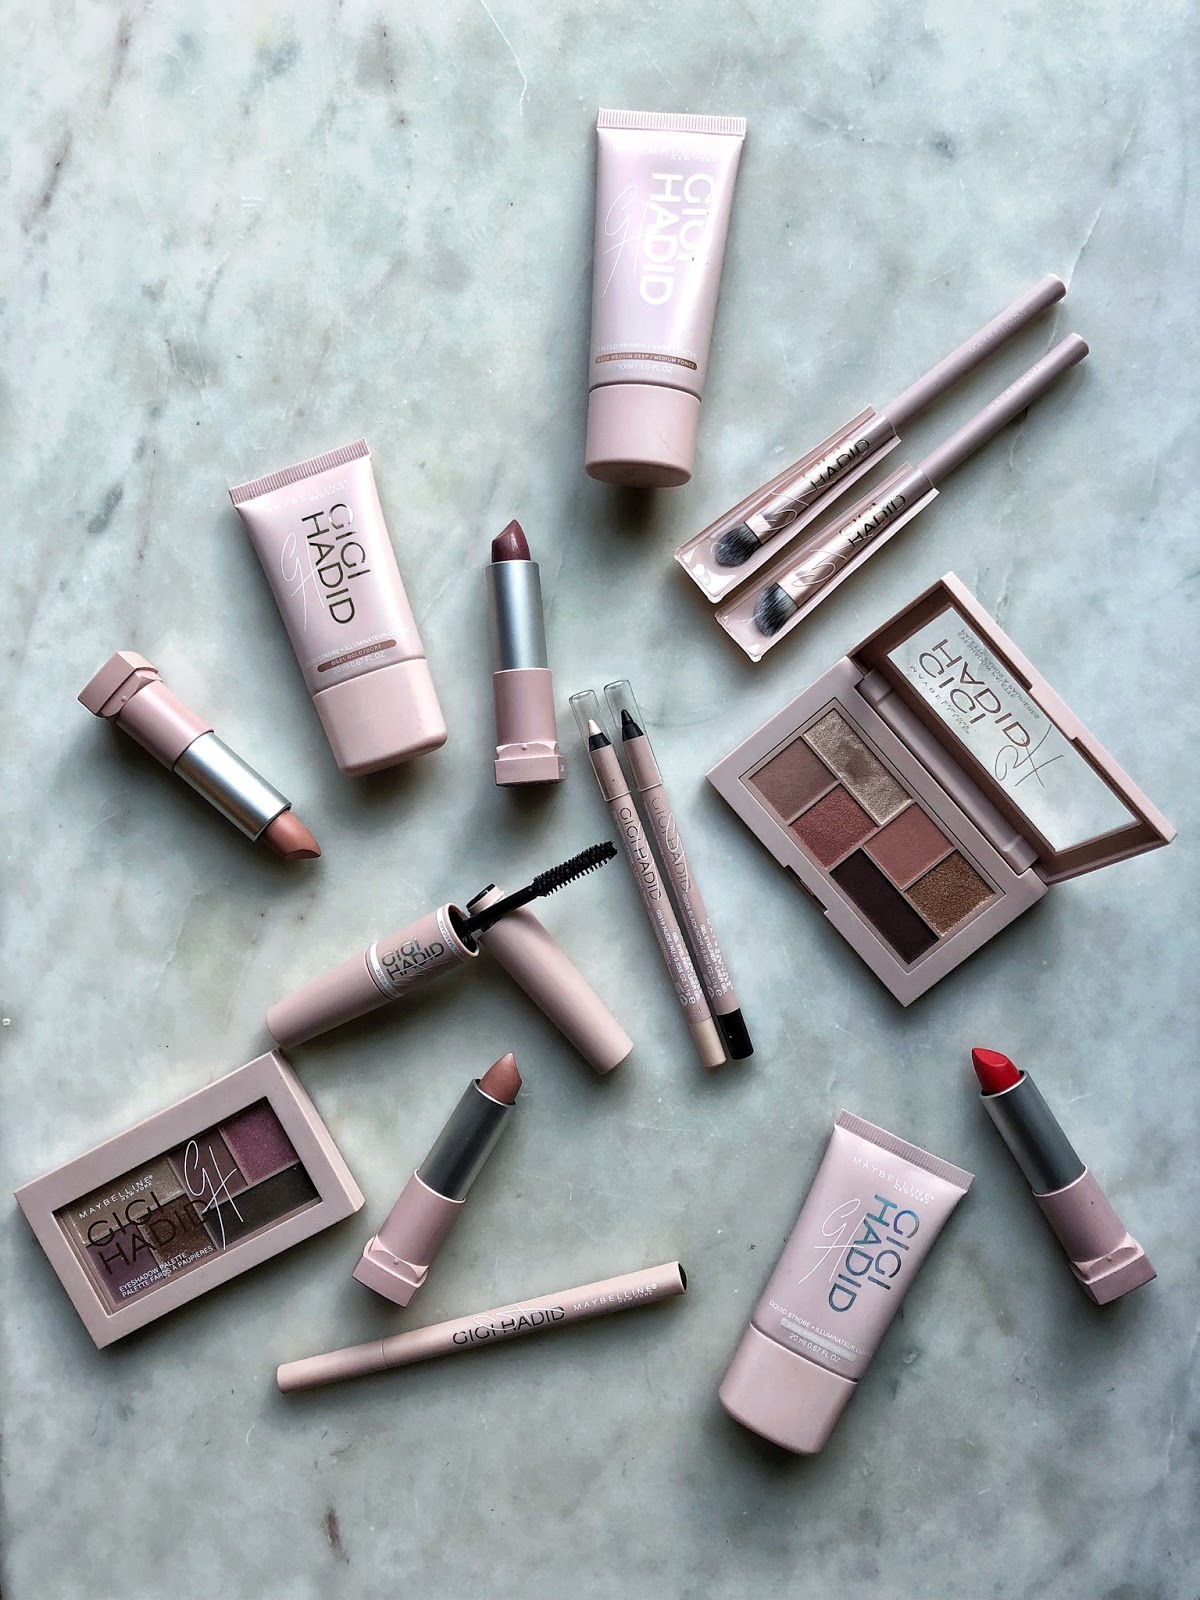 Maybelline New York Gigi Hadid Collection: A quick review